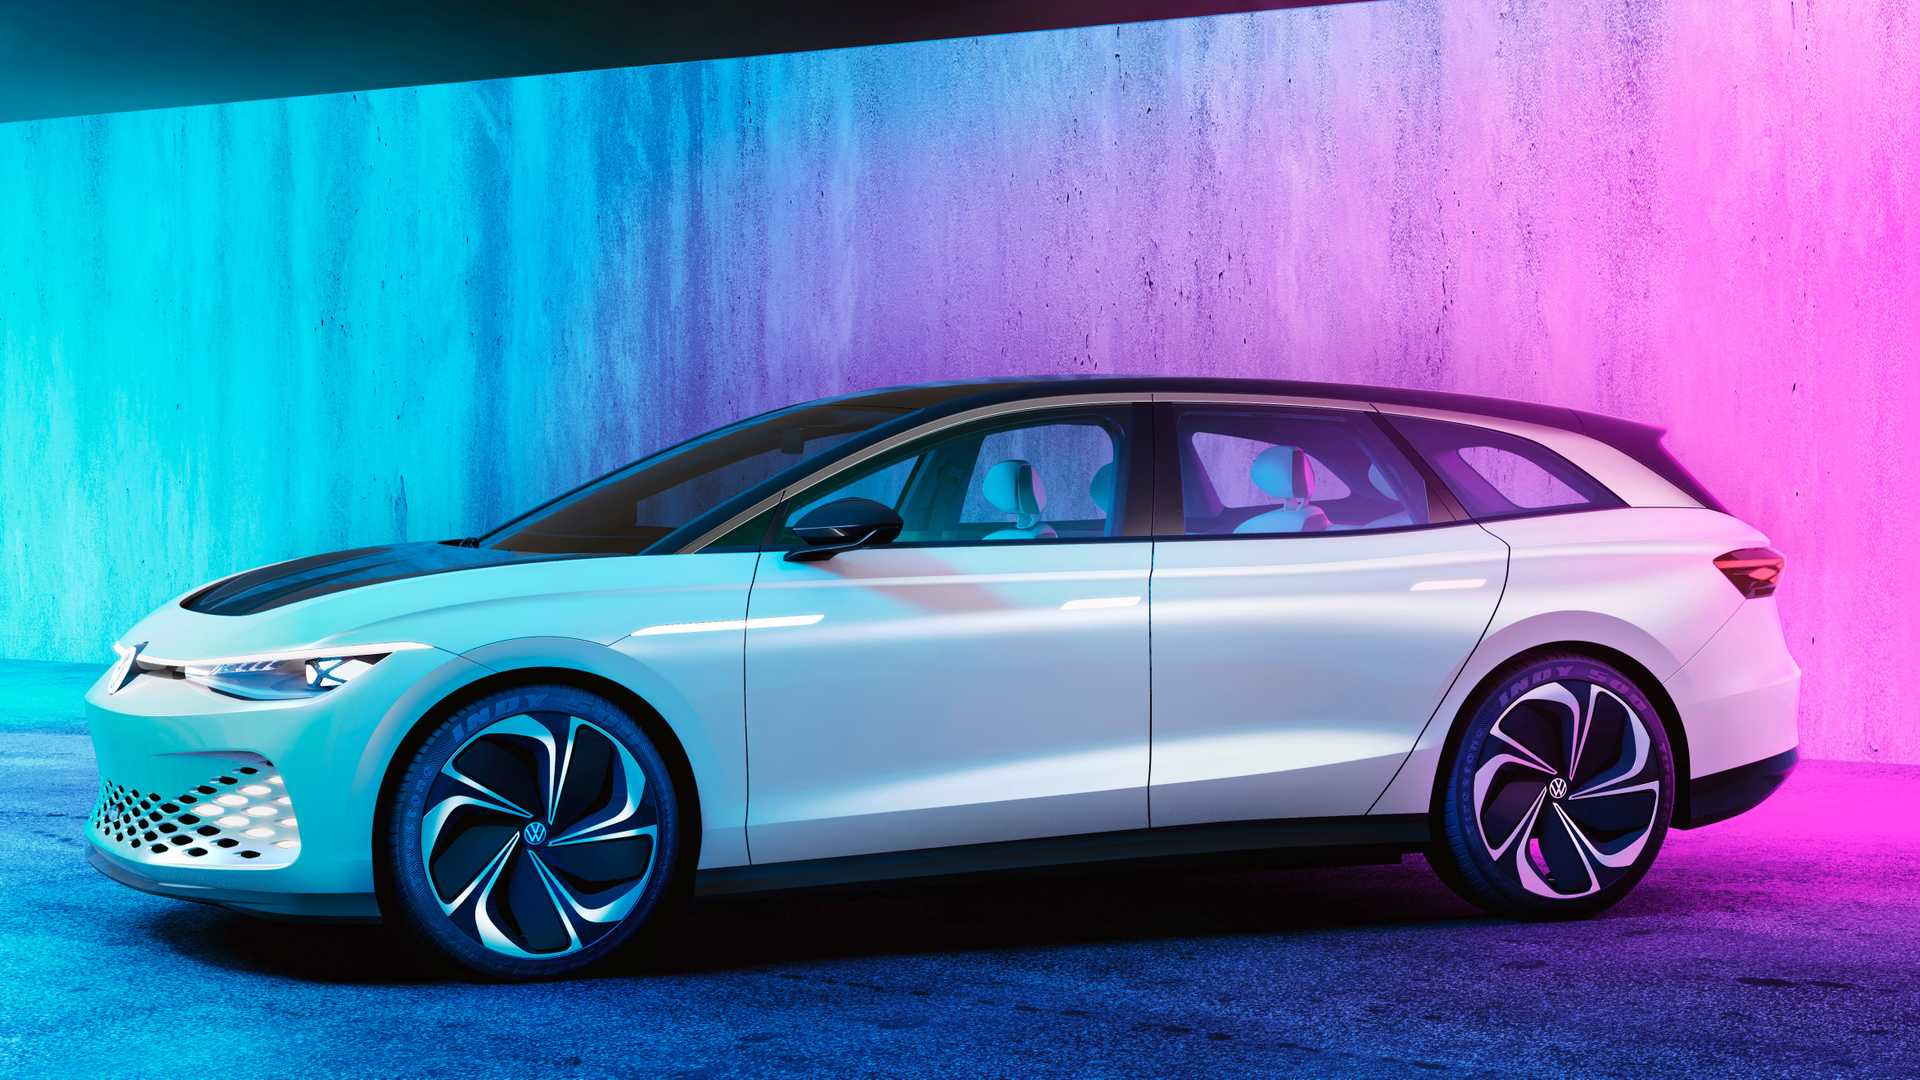 VW May Toughen Up Production ID. Space Vizzion With Alltrack-Like Looks